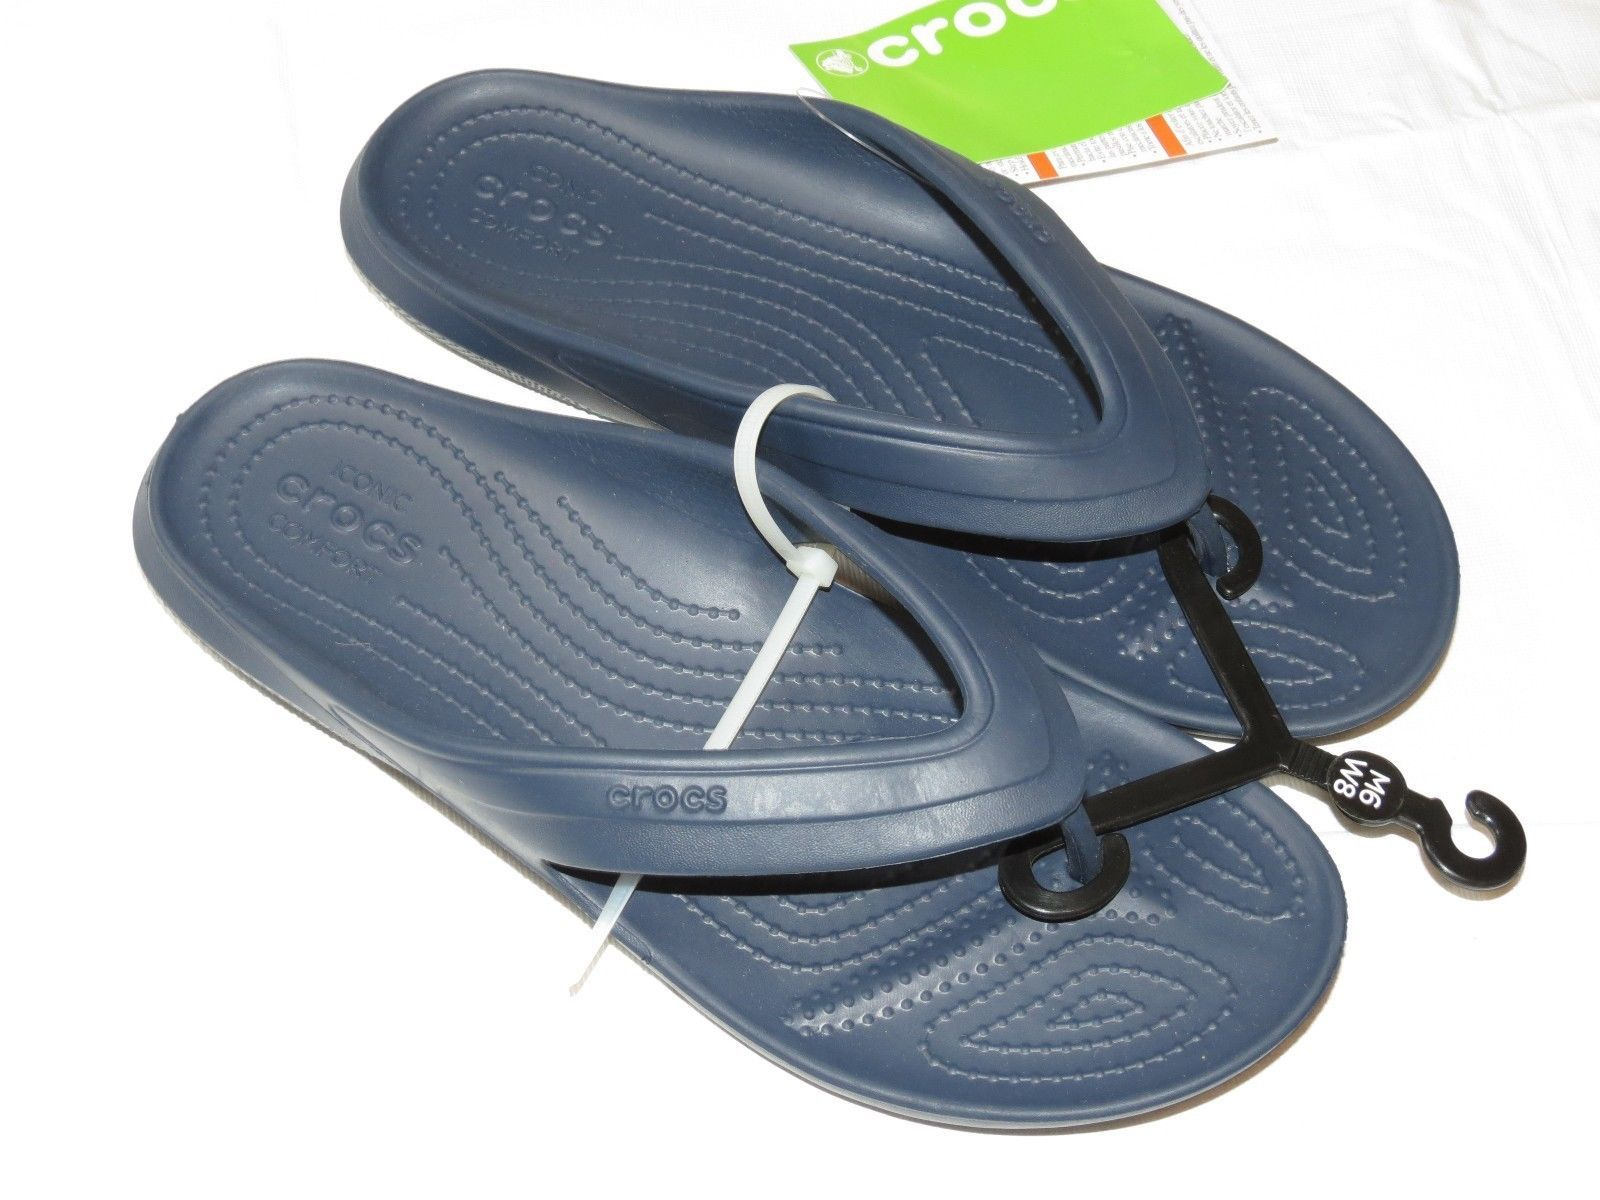 fddecf7d3 Crocs Classic Flip Navy Blue relaxed Unisex and 22 similar items. S l1600